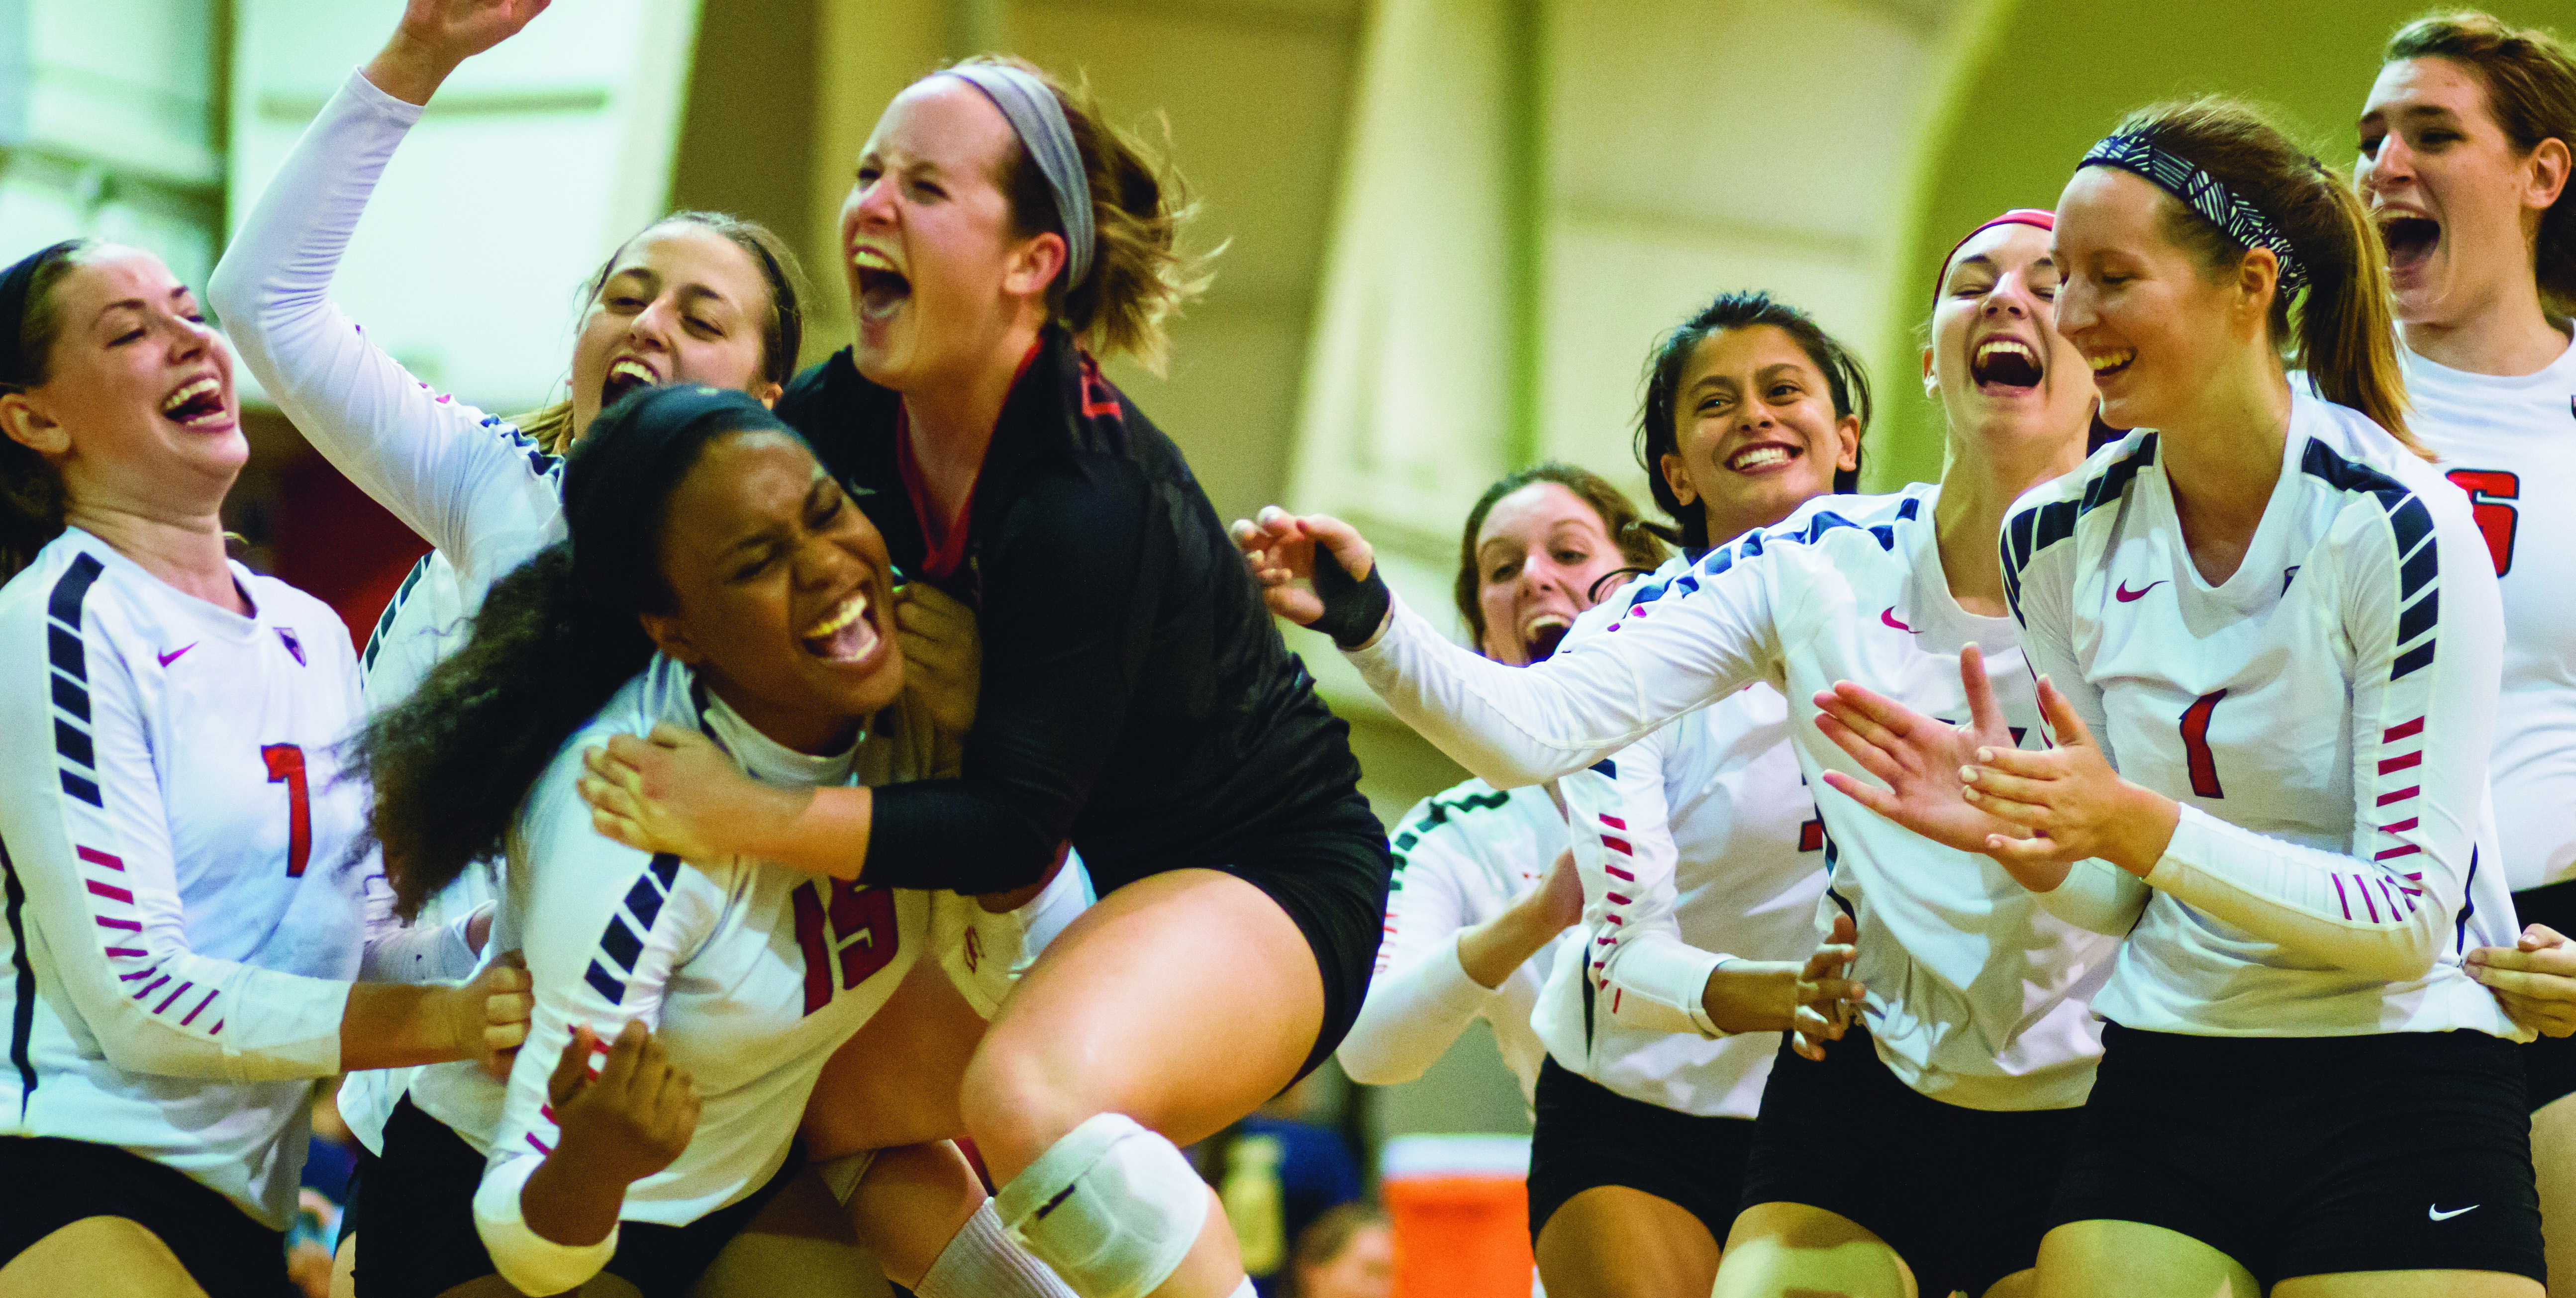 The volleyball team celebrates after coming back from a deficit. (credit: Staff Photographer)